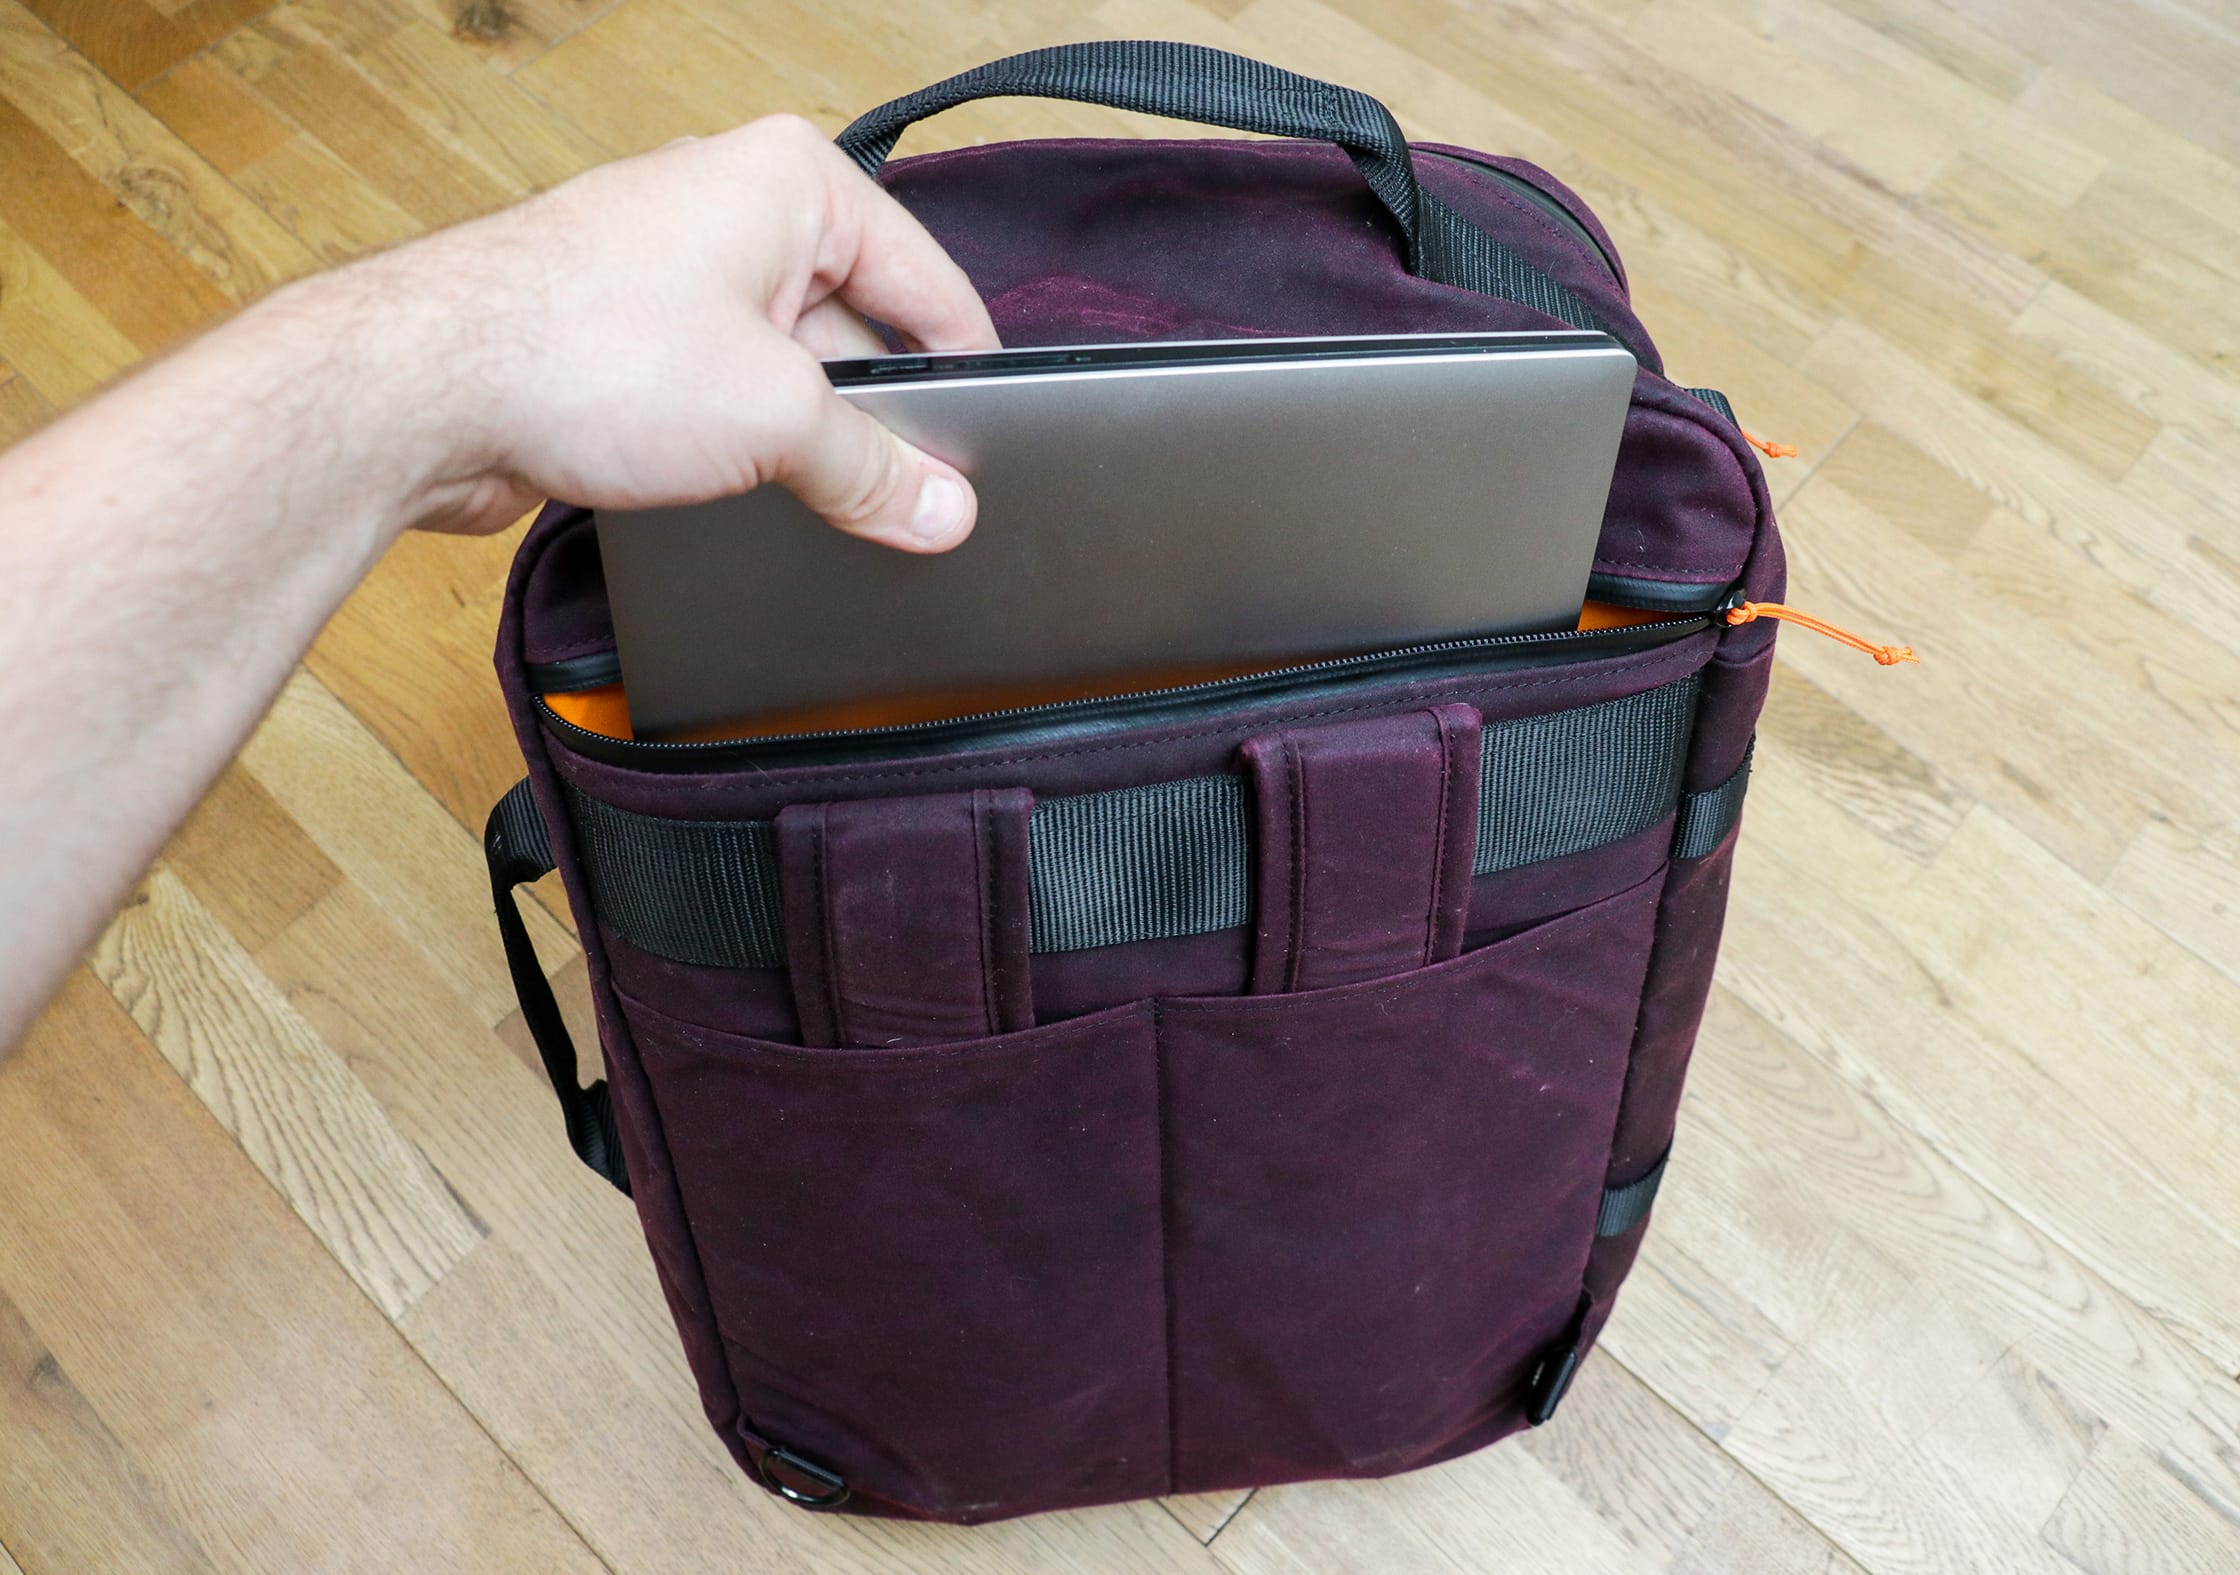 Trakke Storr Laptop Compartment